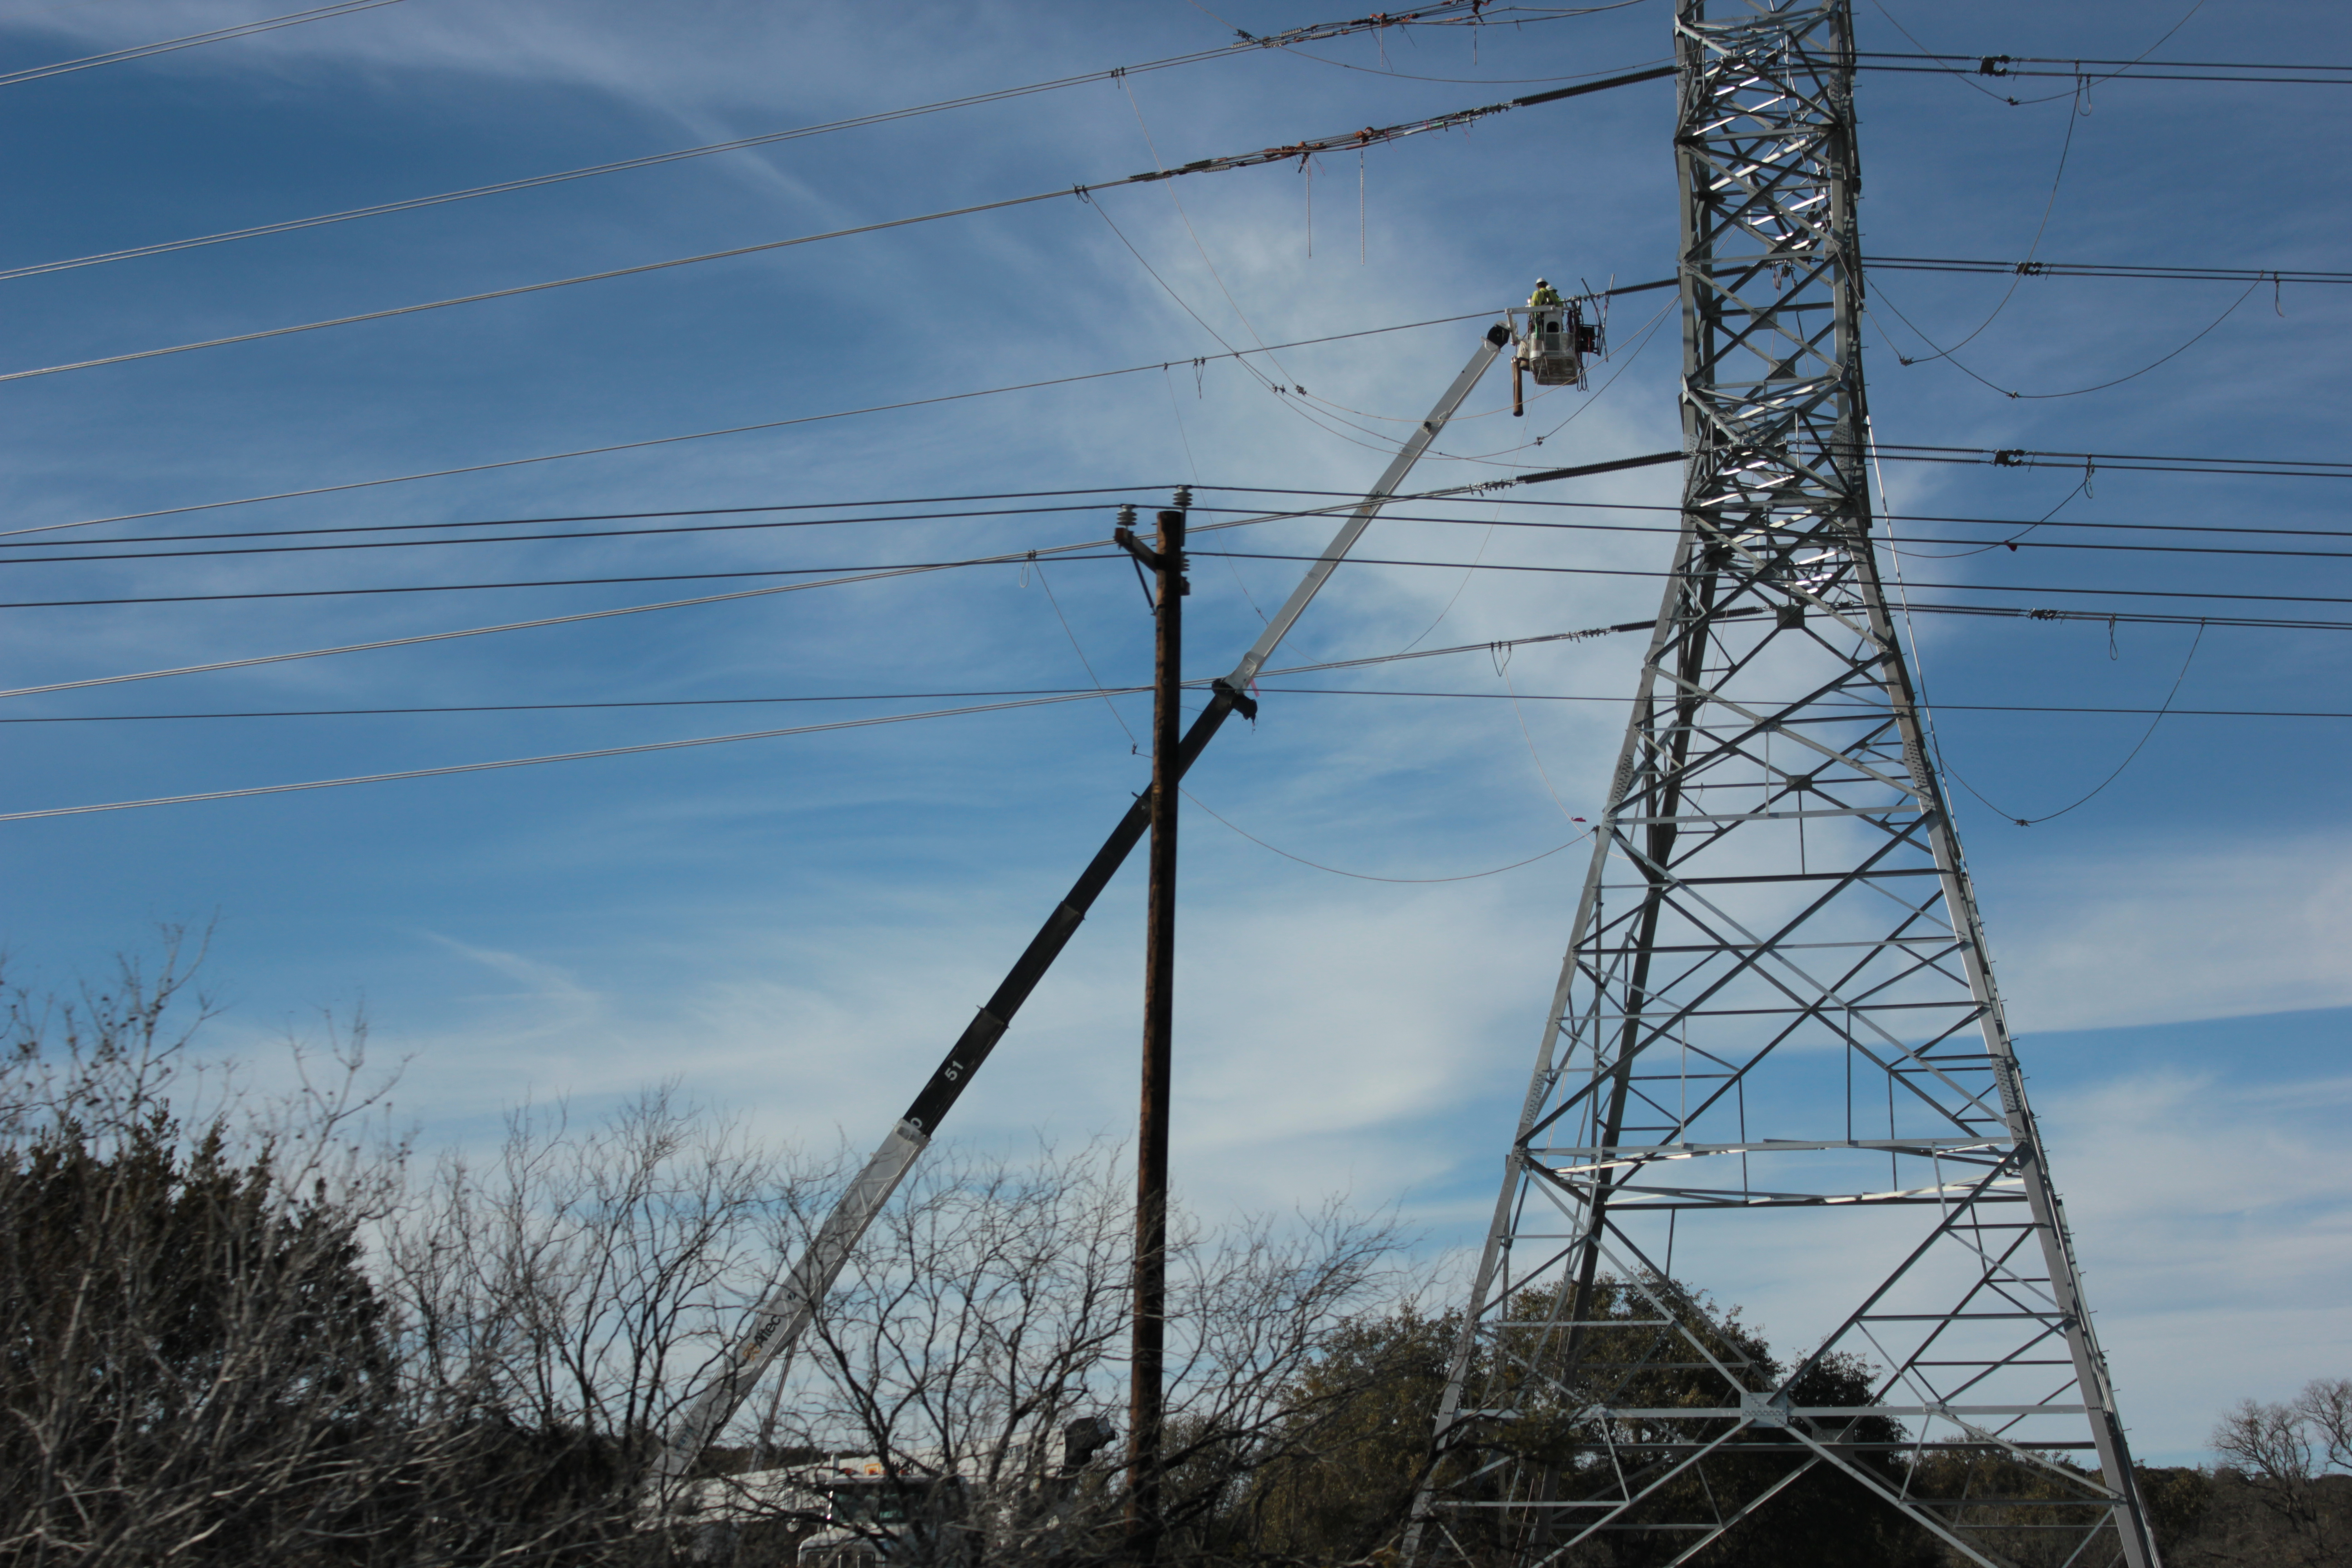 Electricity_transmission_tower_erection_on_the_U.S._Route_90_in_Texas_02